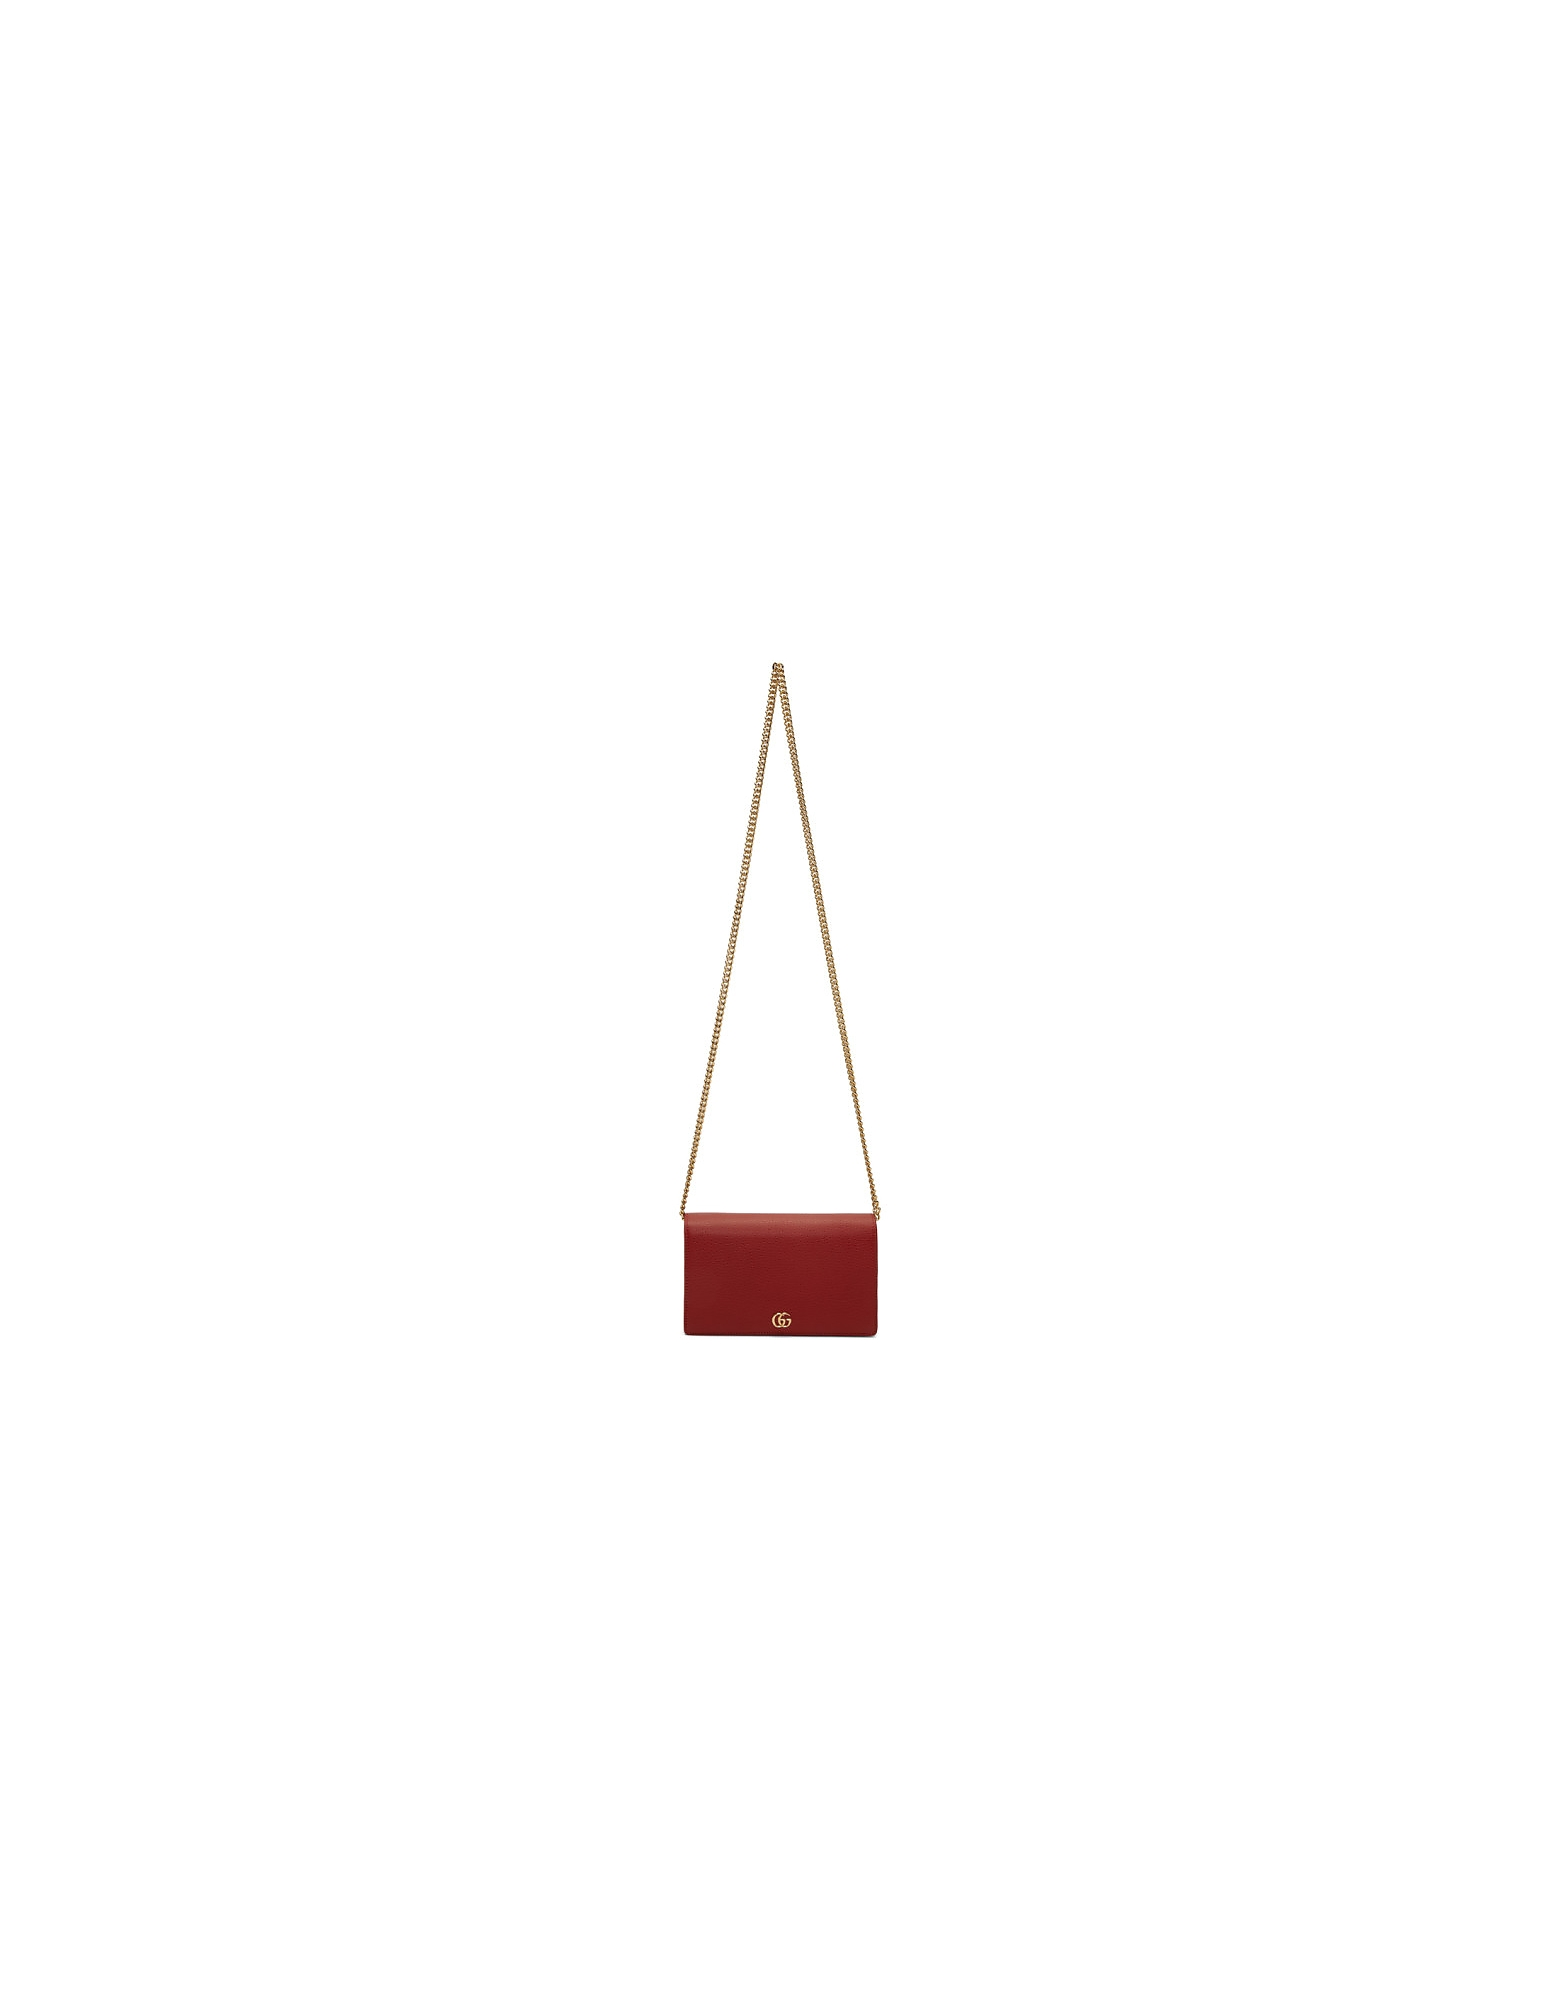 Gucci Designer Handbags, Red Mini GG Marmont Chain Bag